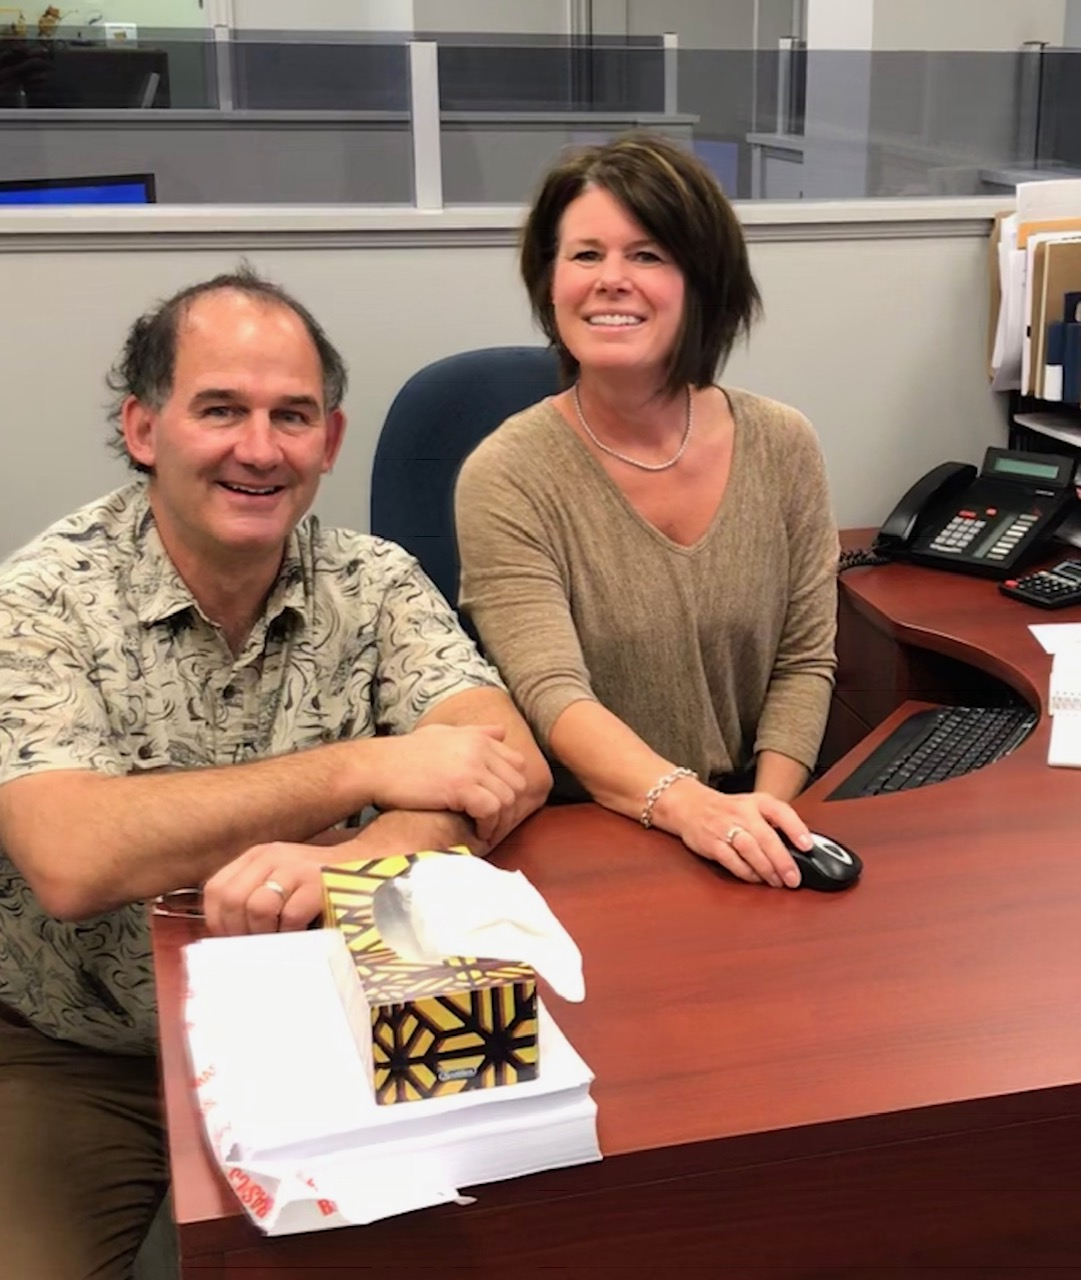 Culture consultant Frank Gallant smiling with insurance broker Angie Hull